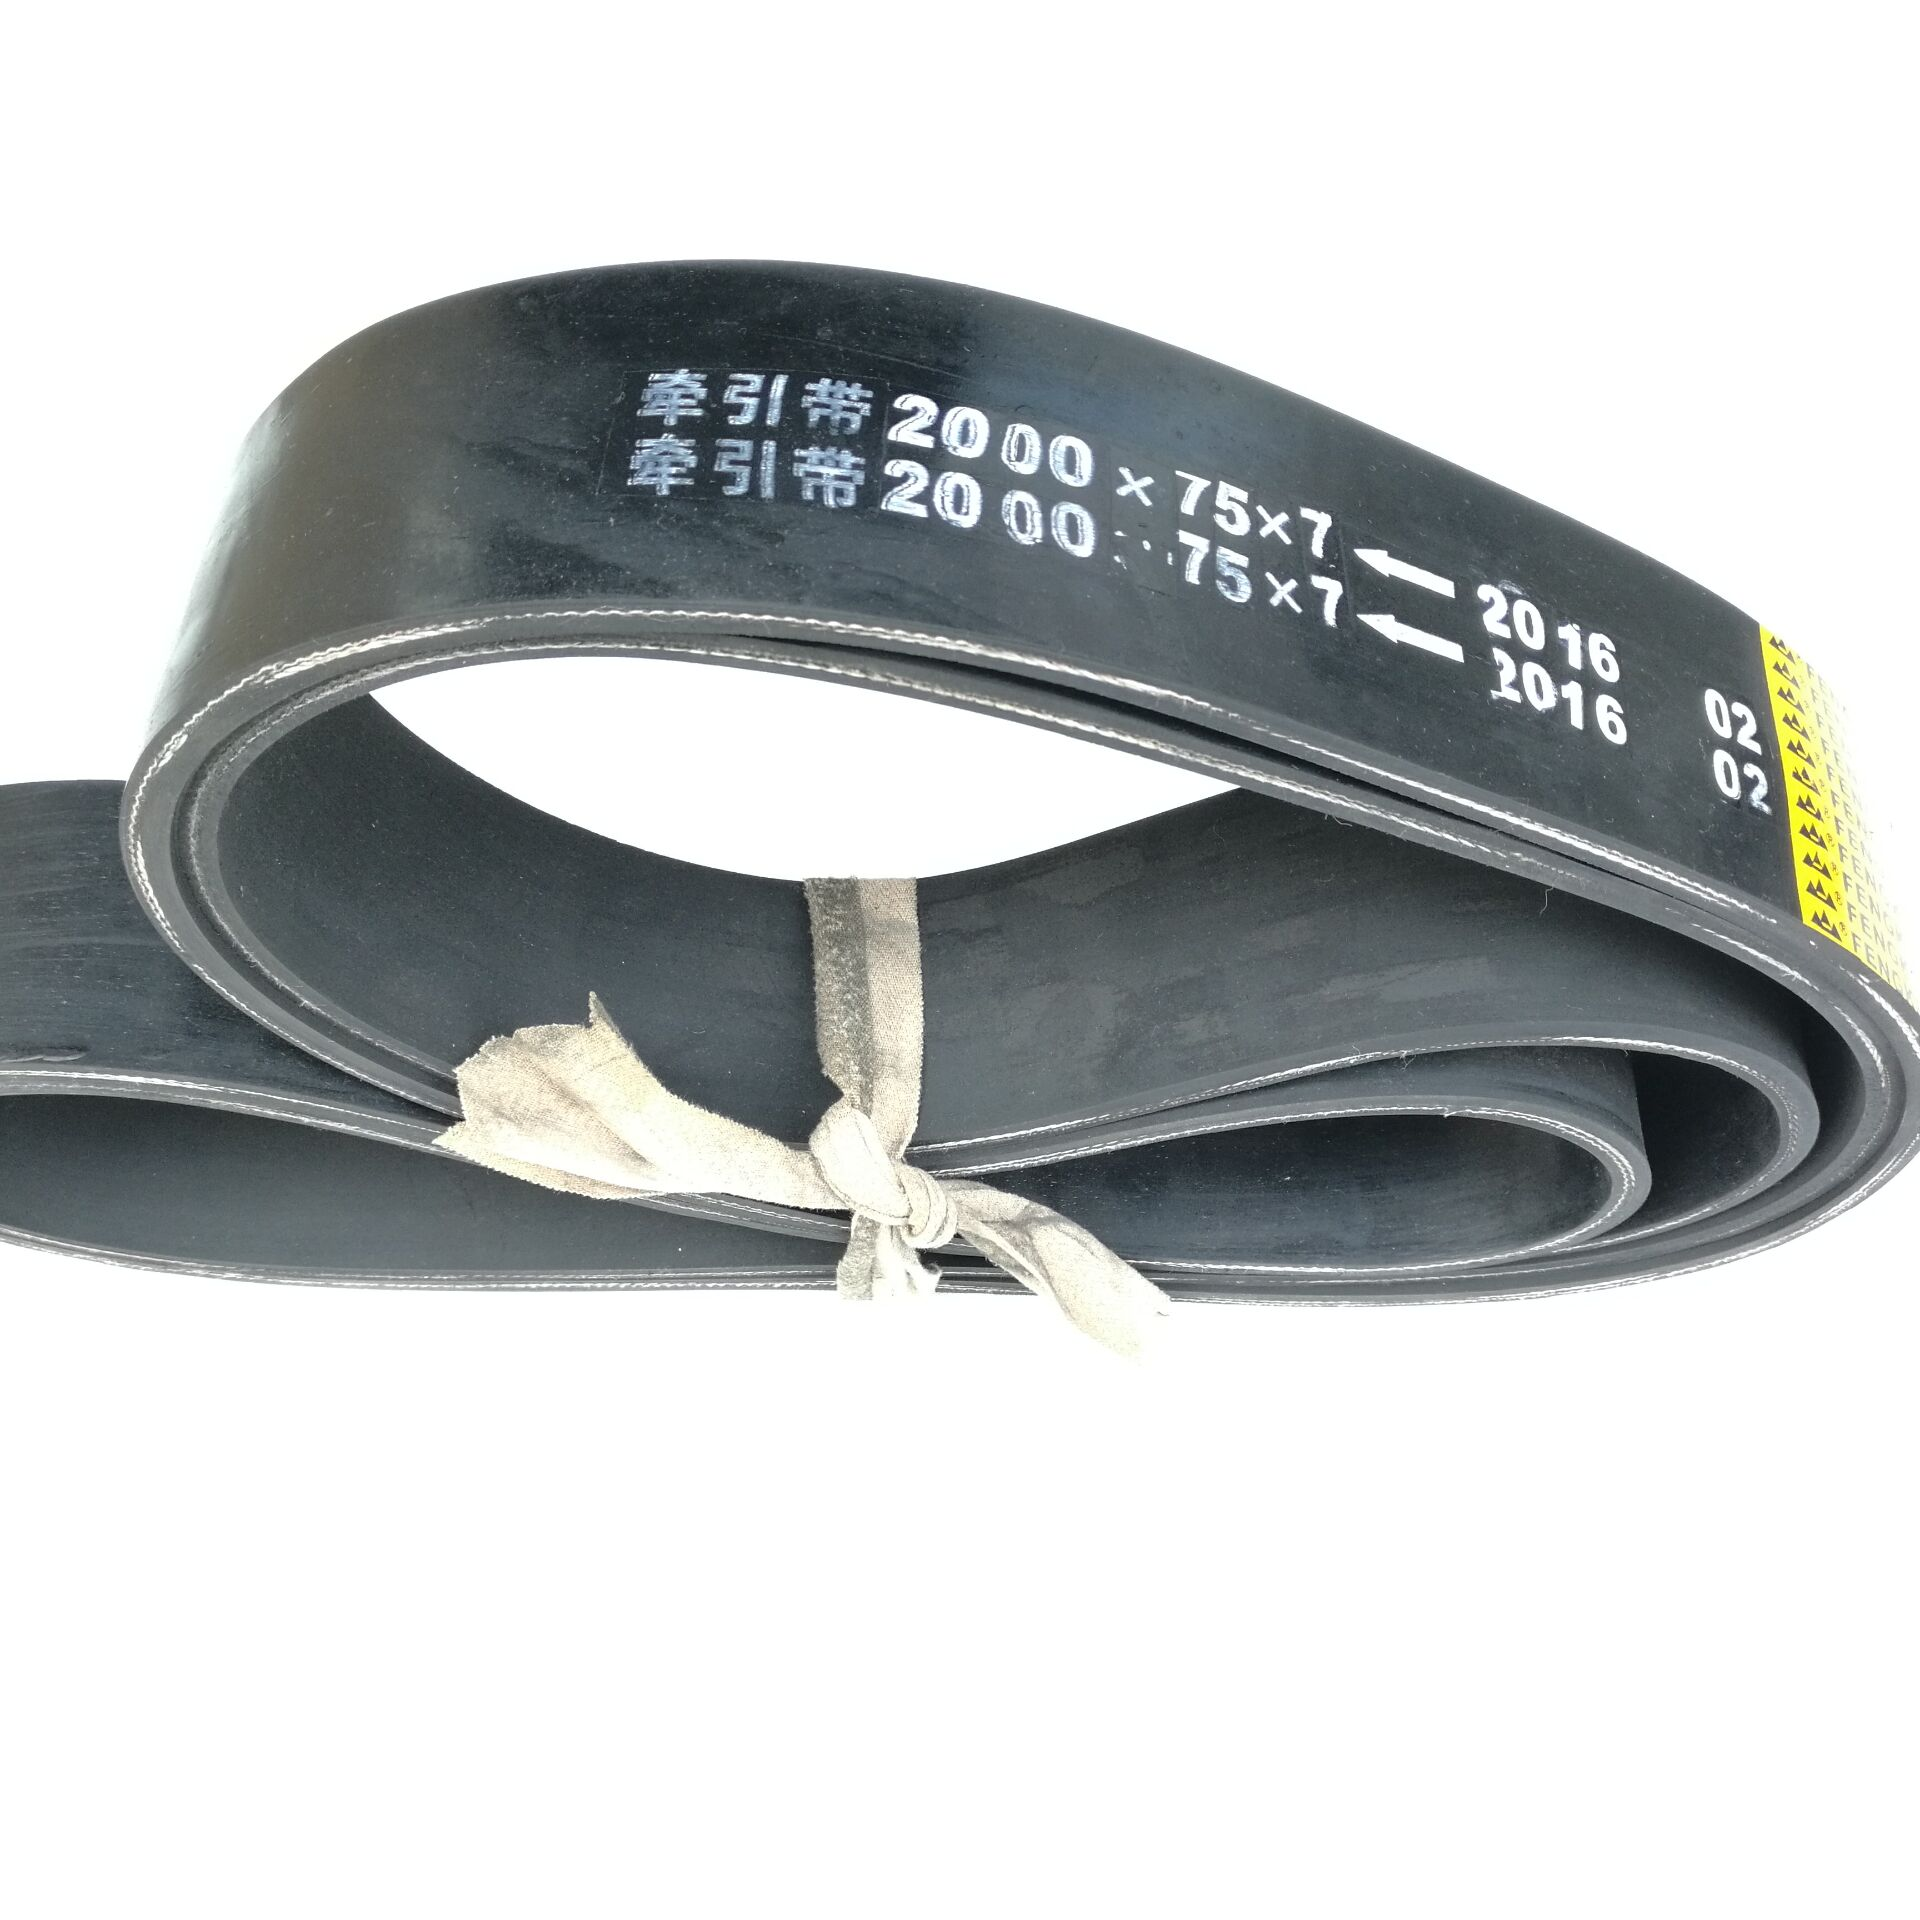 Rubber Flat Belt For Electric Cable(section 2000x75x7)